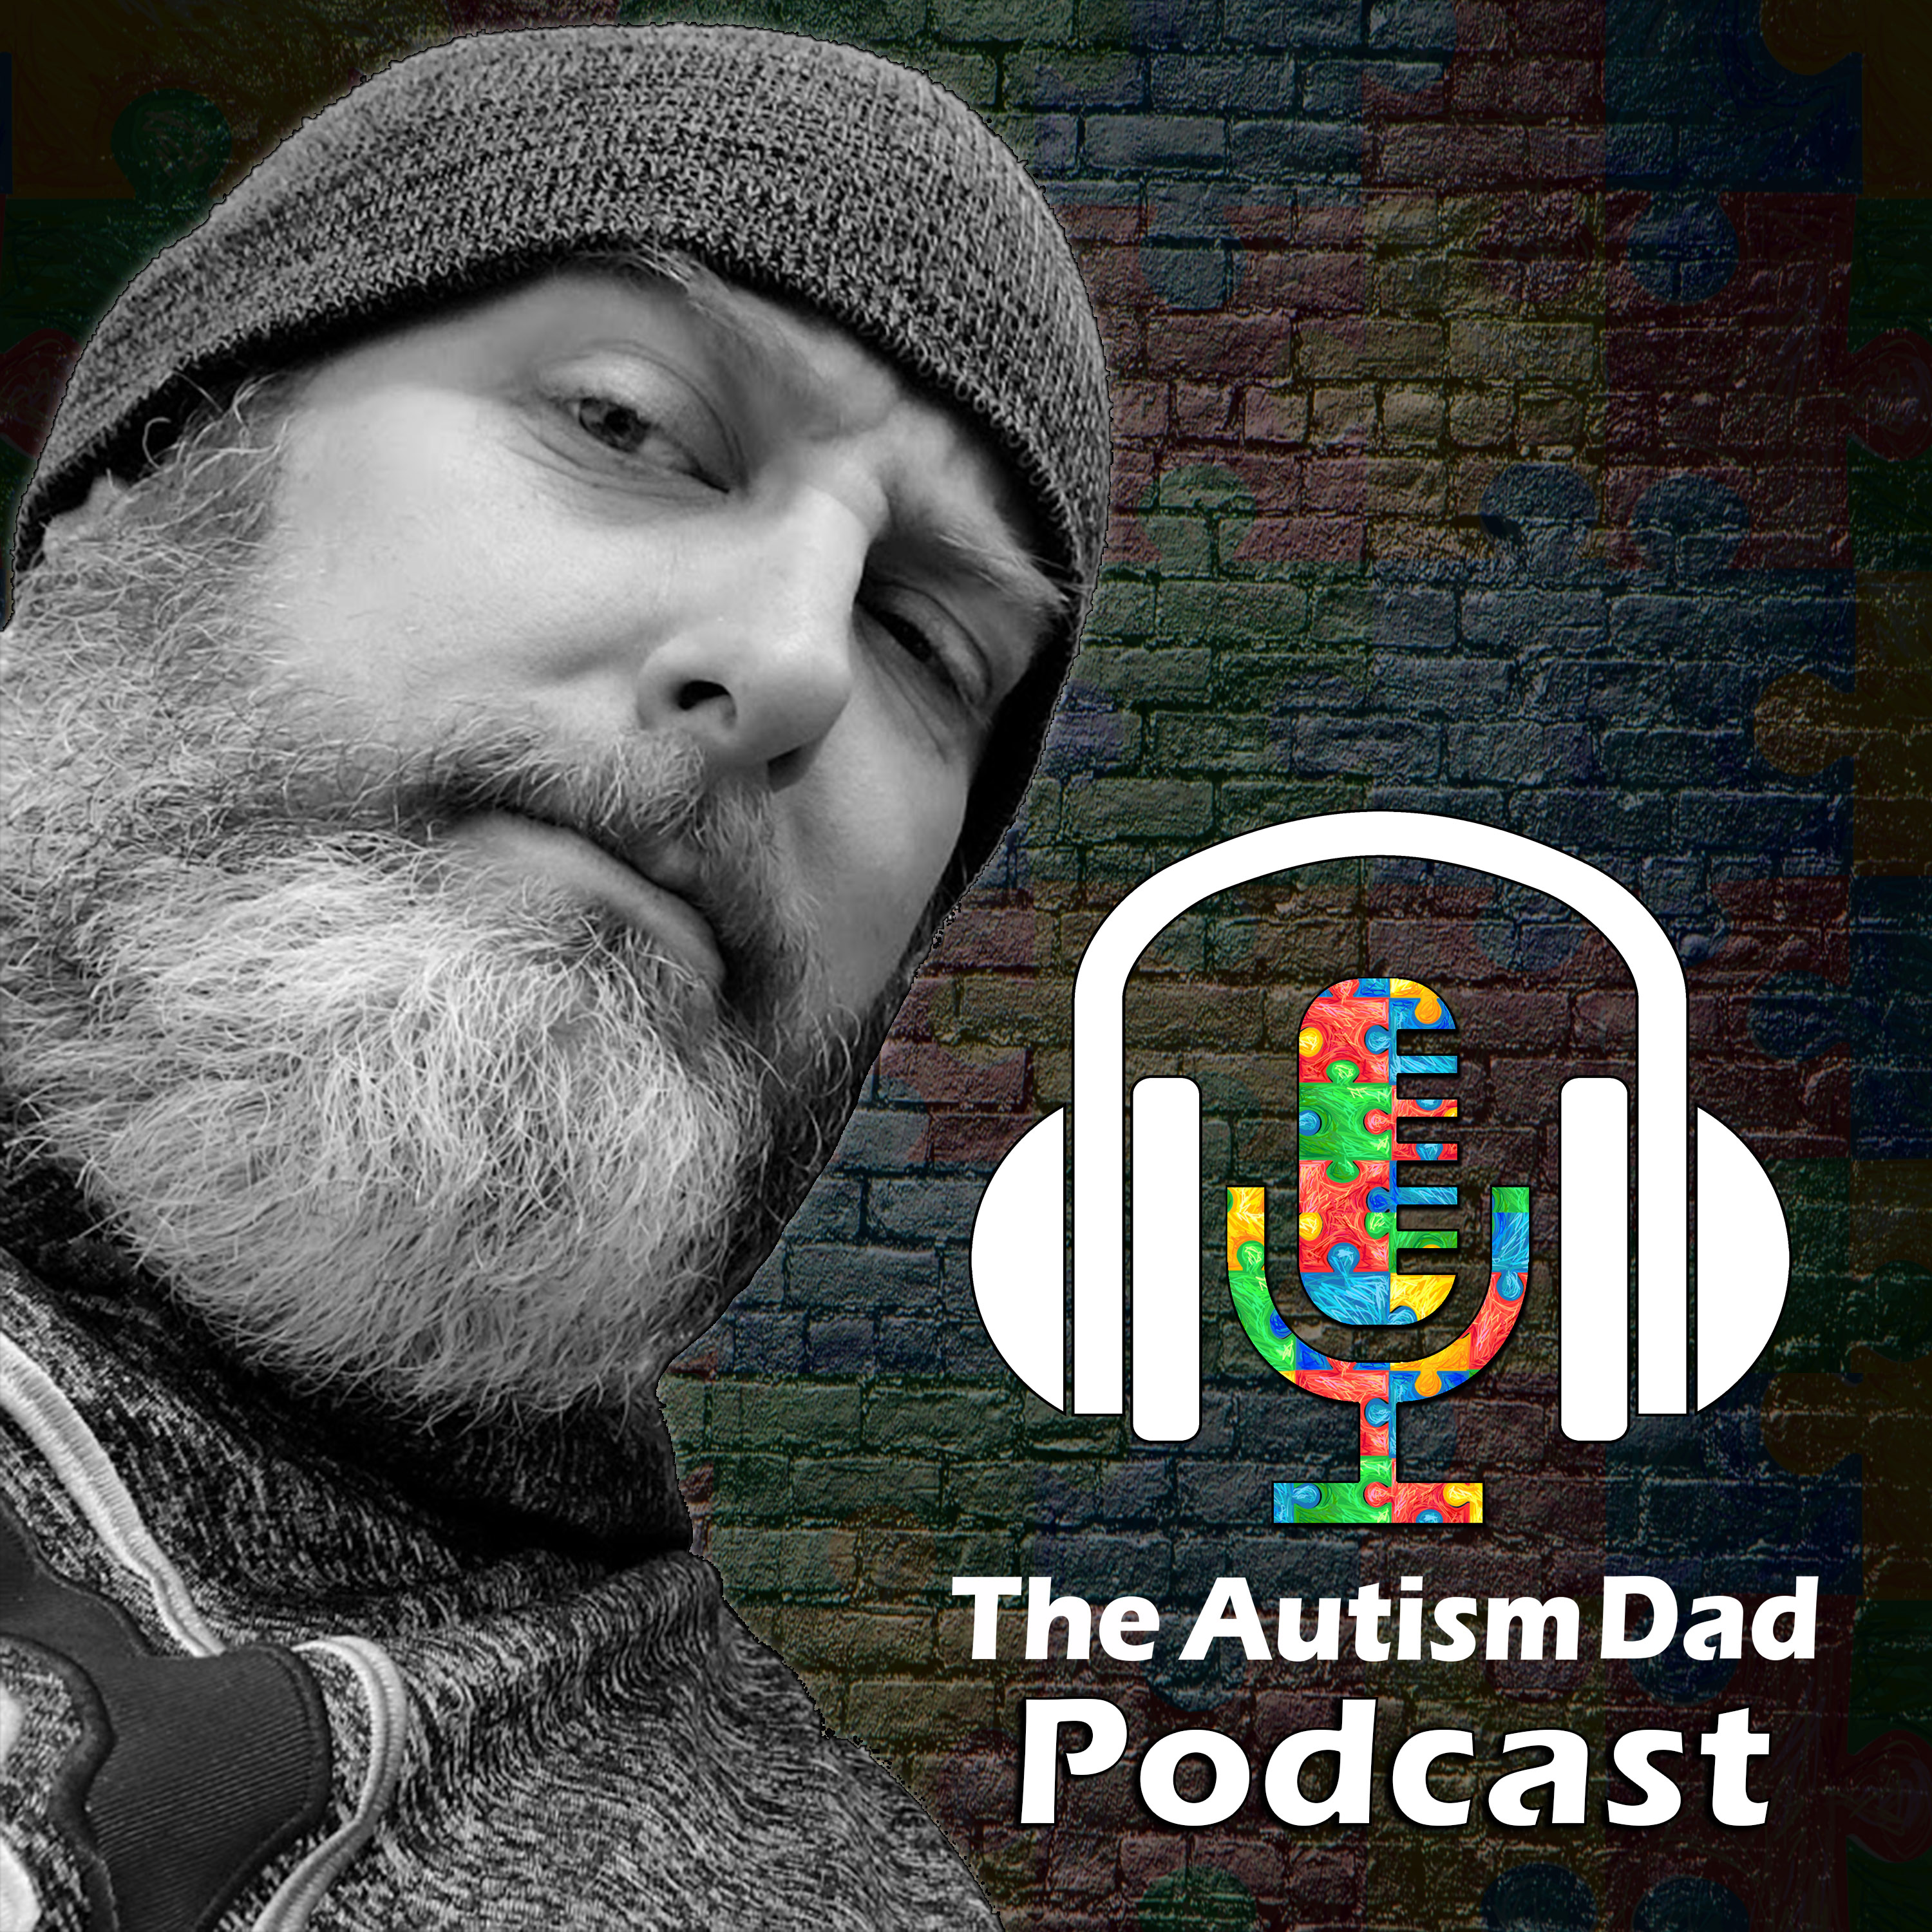 Artwork for podcast The Autism Dad Podcast